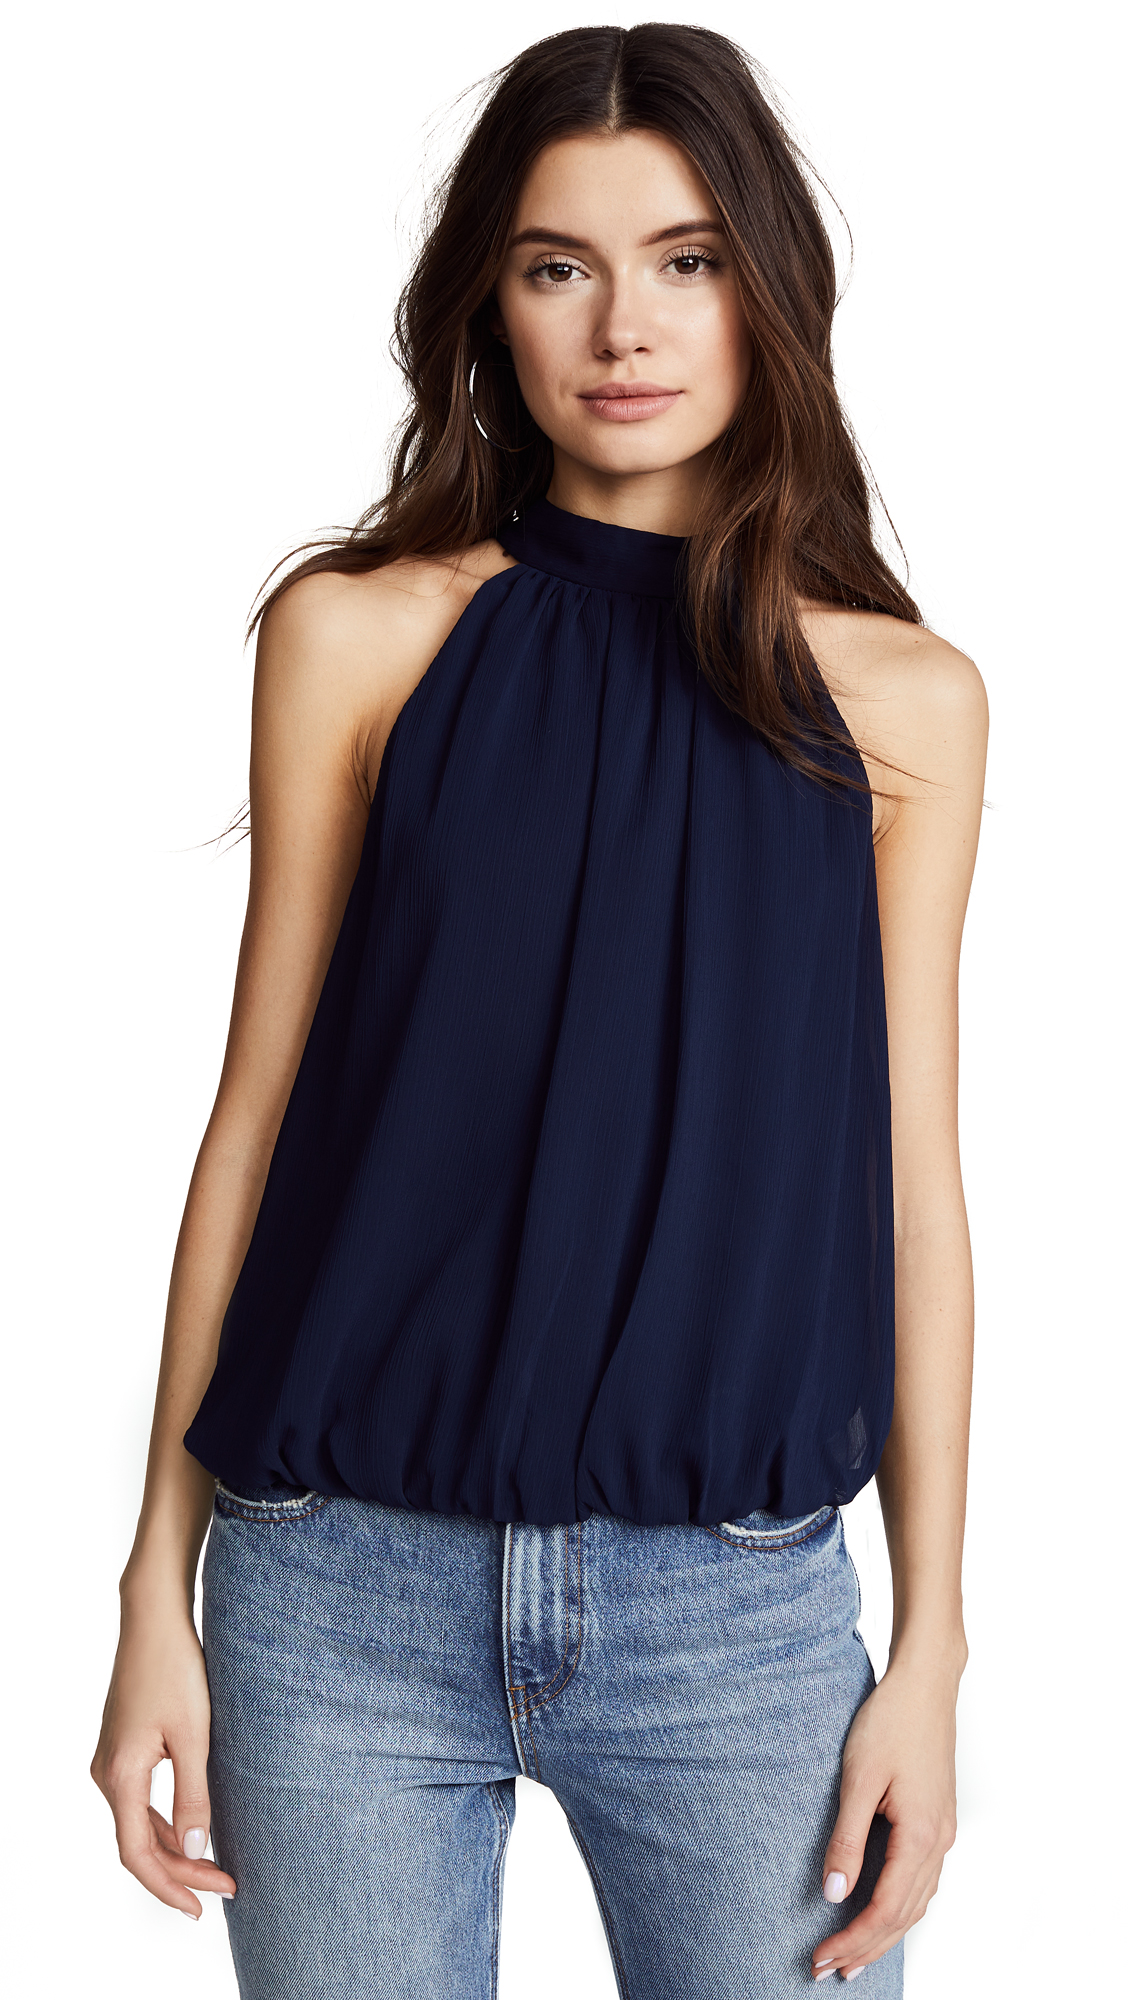 alice + olivia Maris Gathered Halter Top - Navy